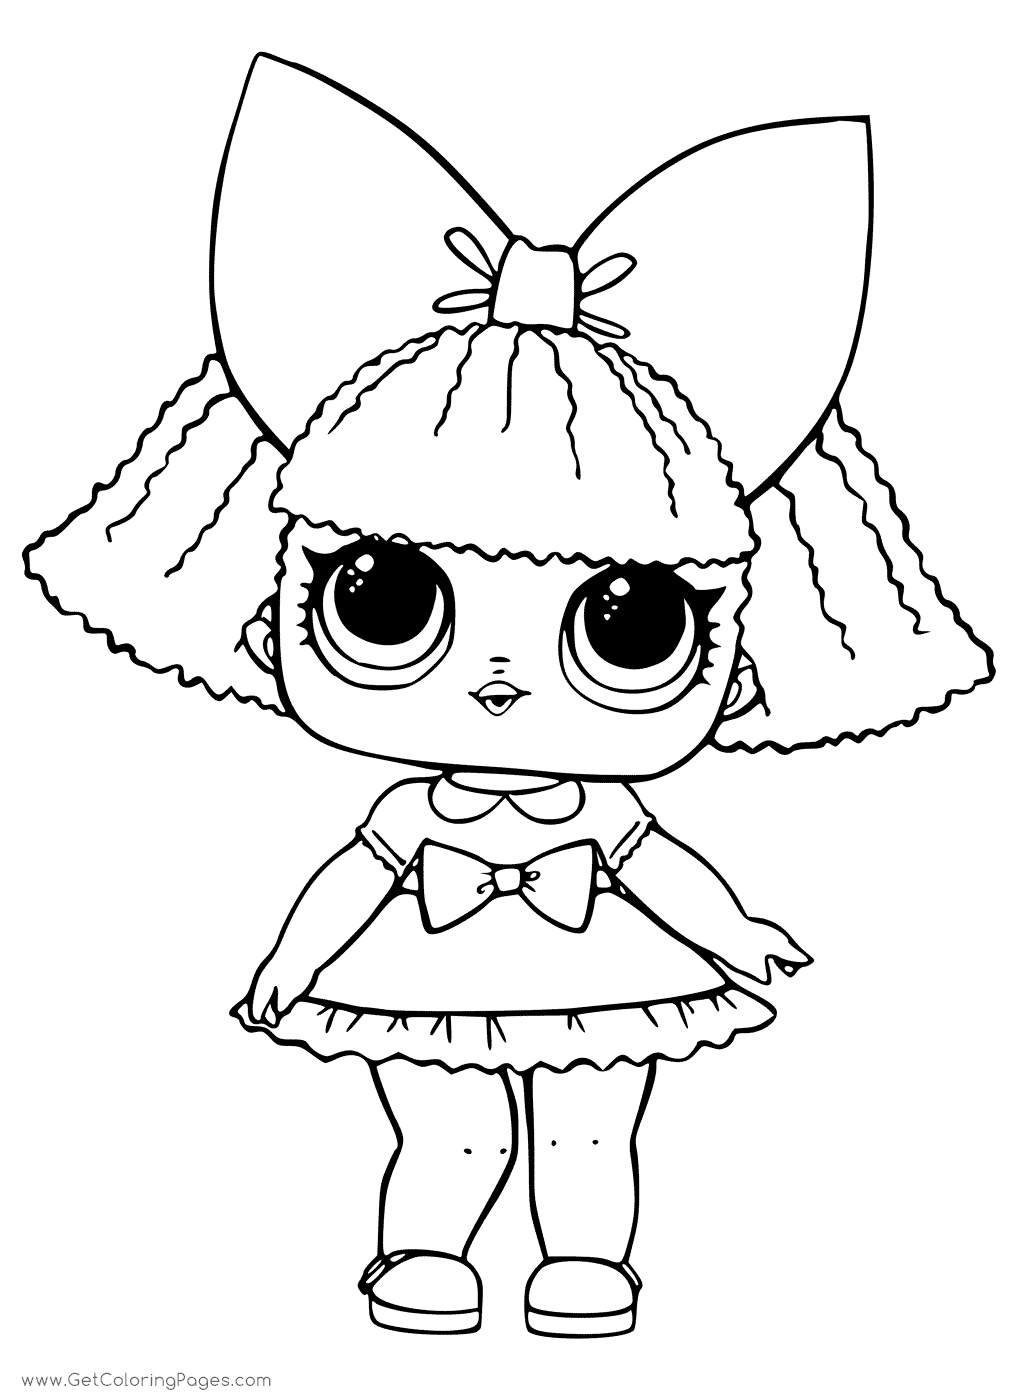 Lolsurprise get coloring these lovely lol surprise coloring pages click this link for more ol surprise coloring pages lol surprise coloring pages